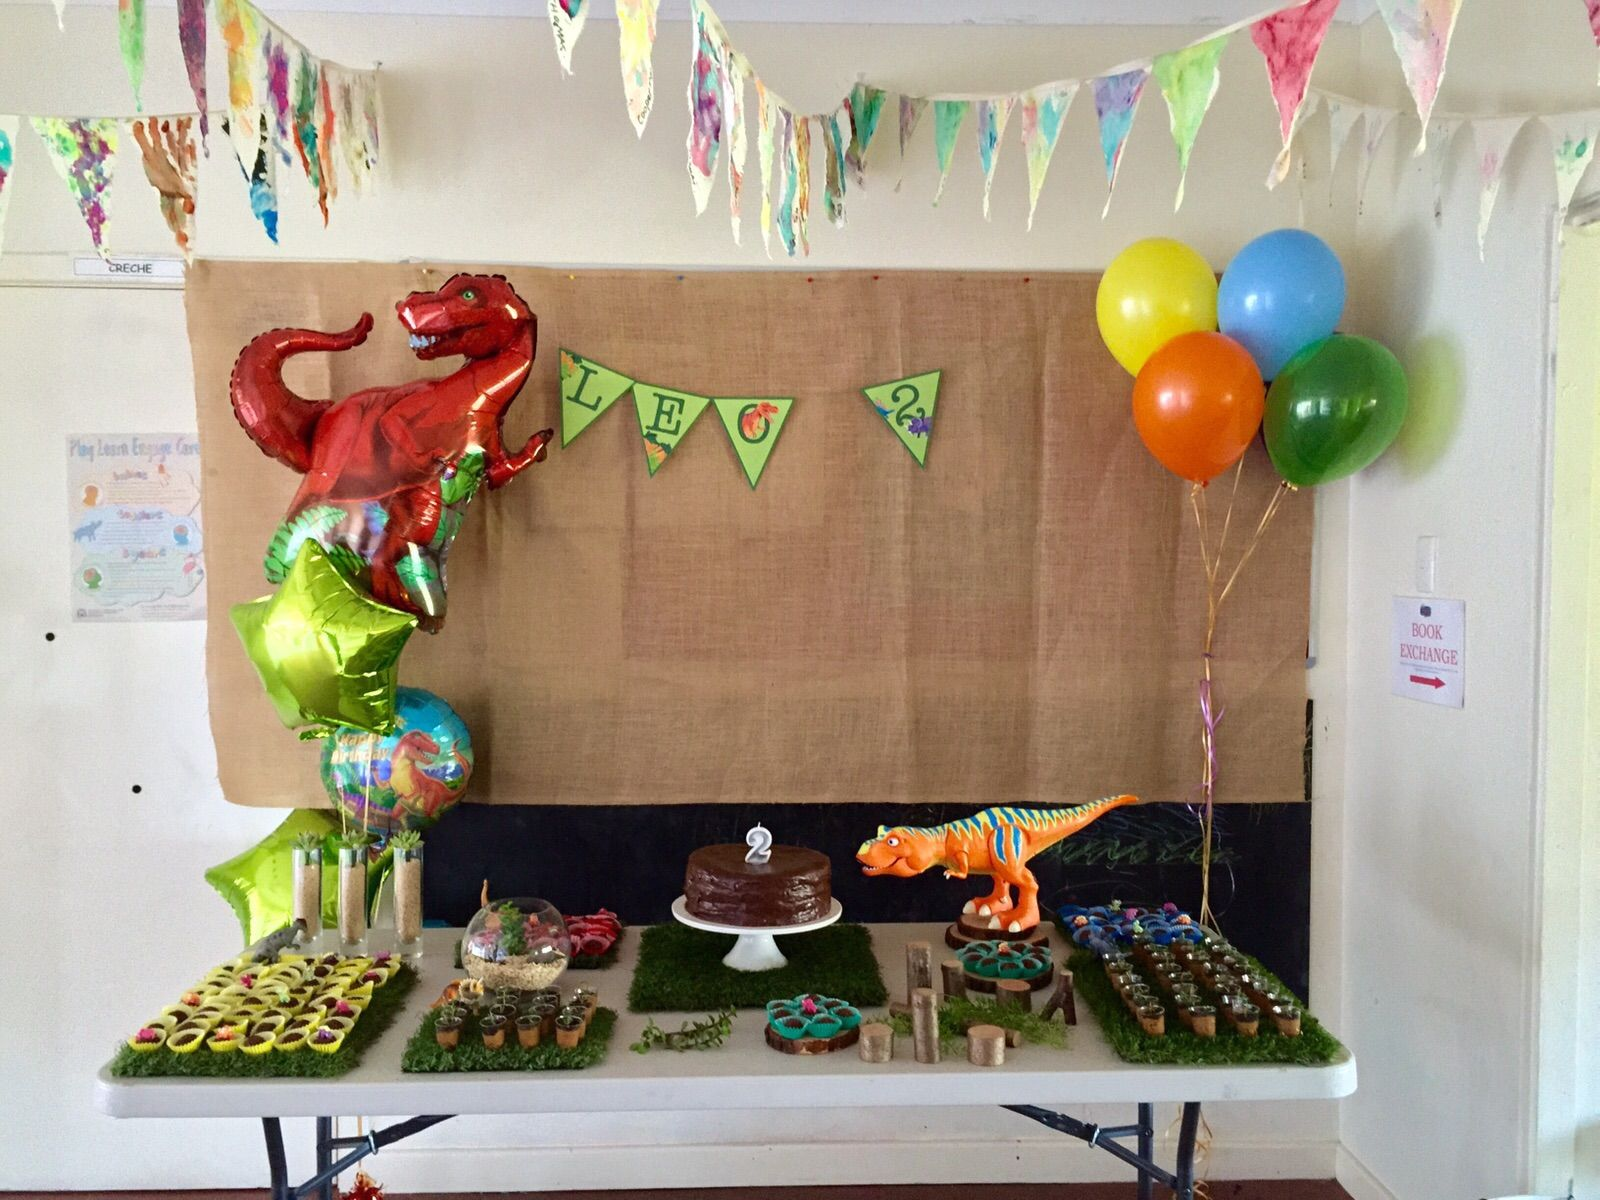 Leo's dinosaur bday party. Cake table. Lots of artificial lawn brought a special touch.